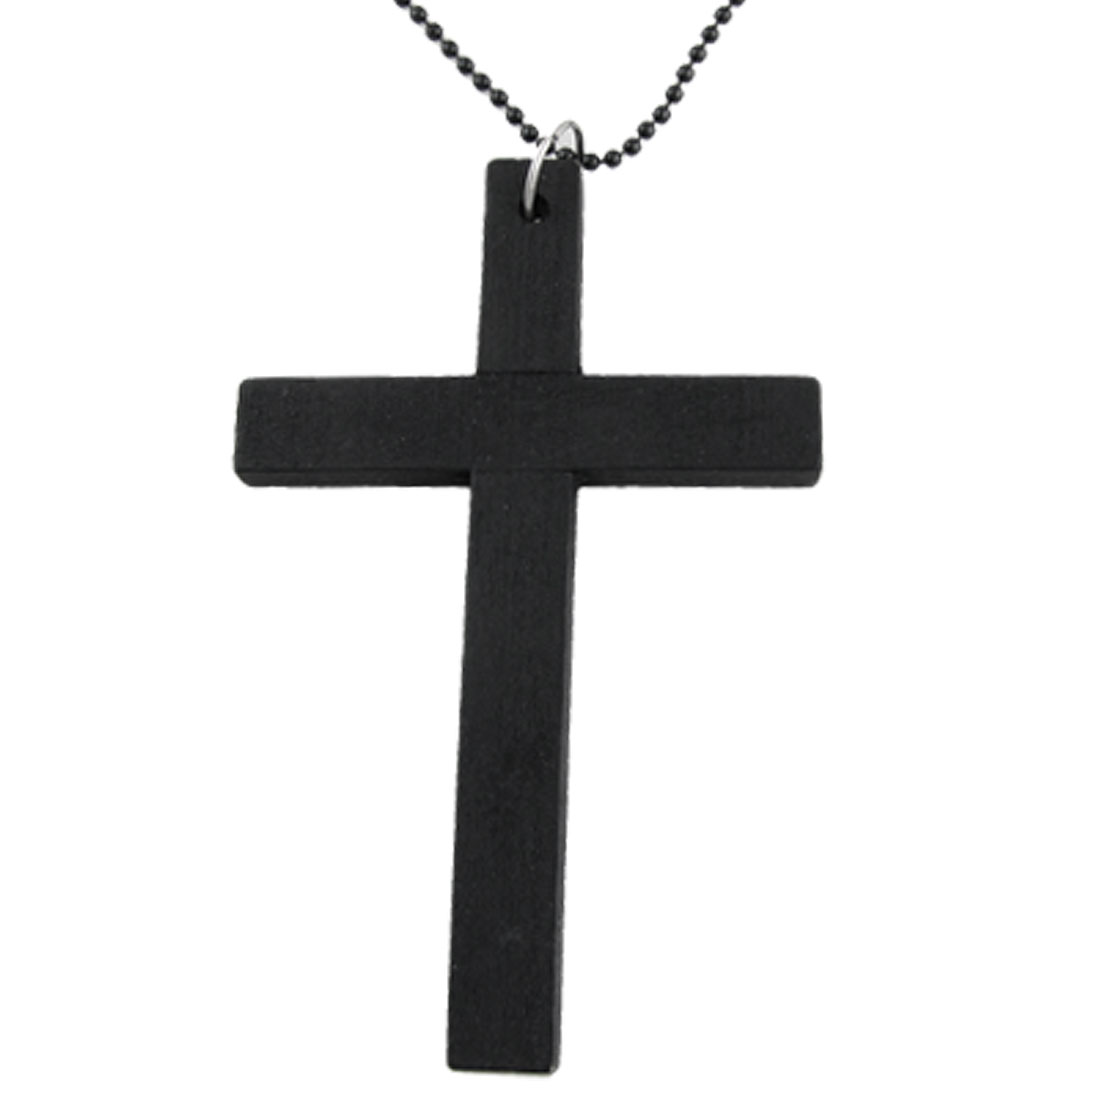 Unisex Cylindrical Beads Chain Wooden Cross Design Pendant Necklace Black